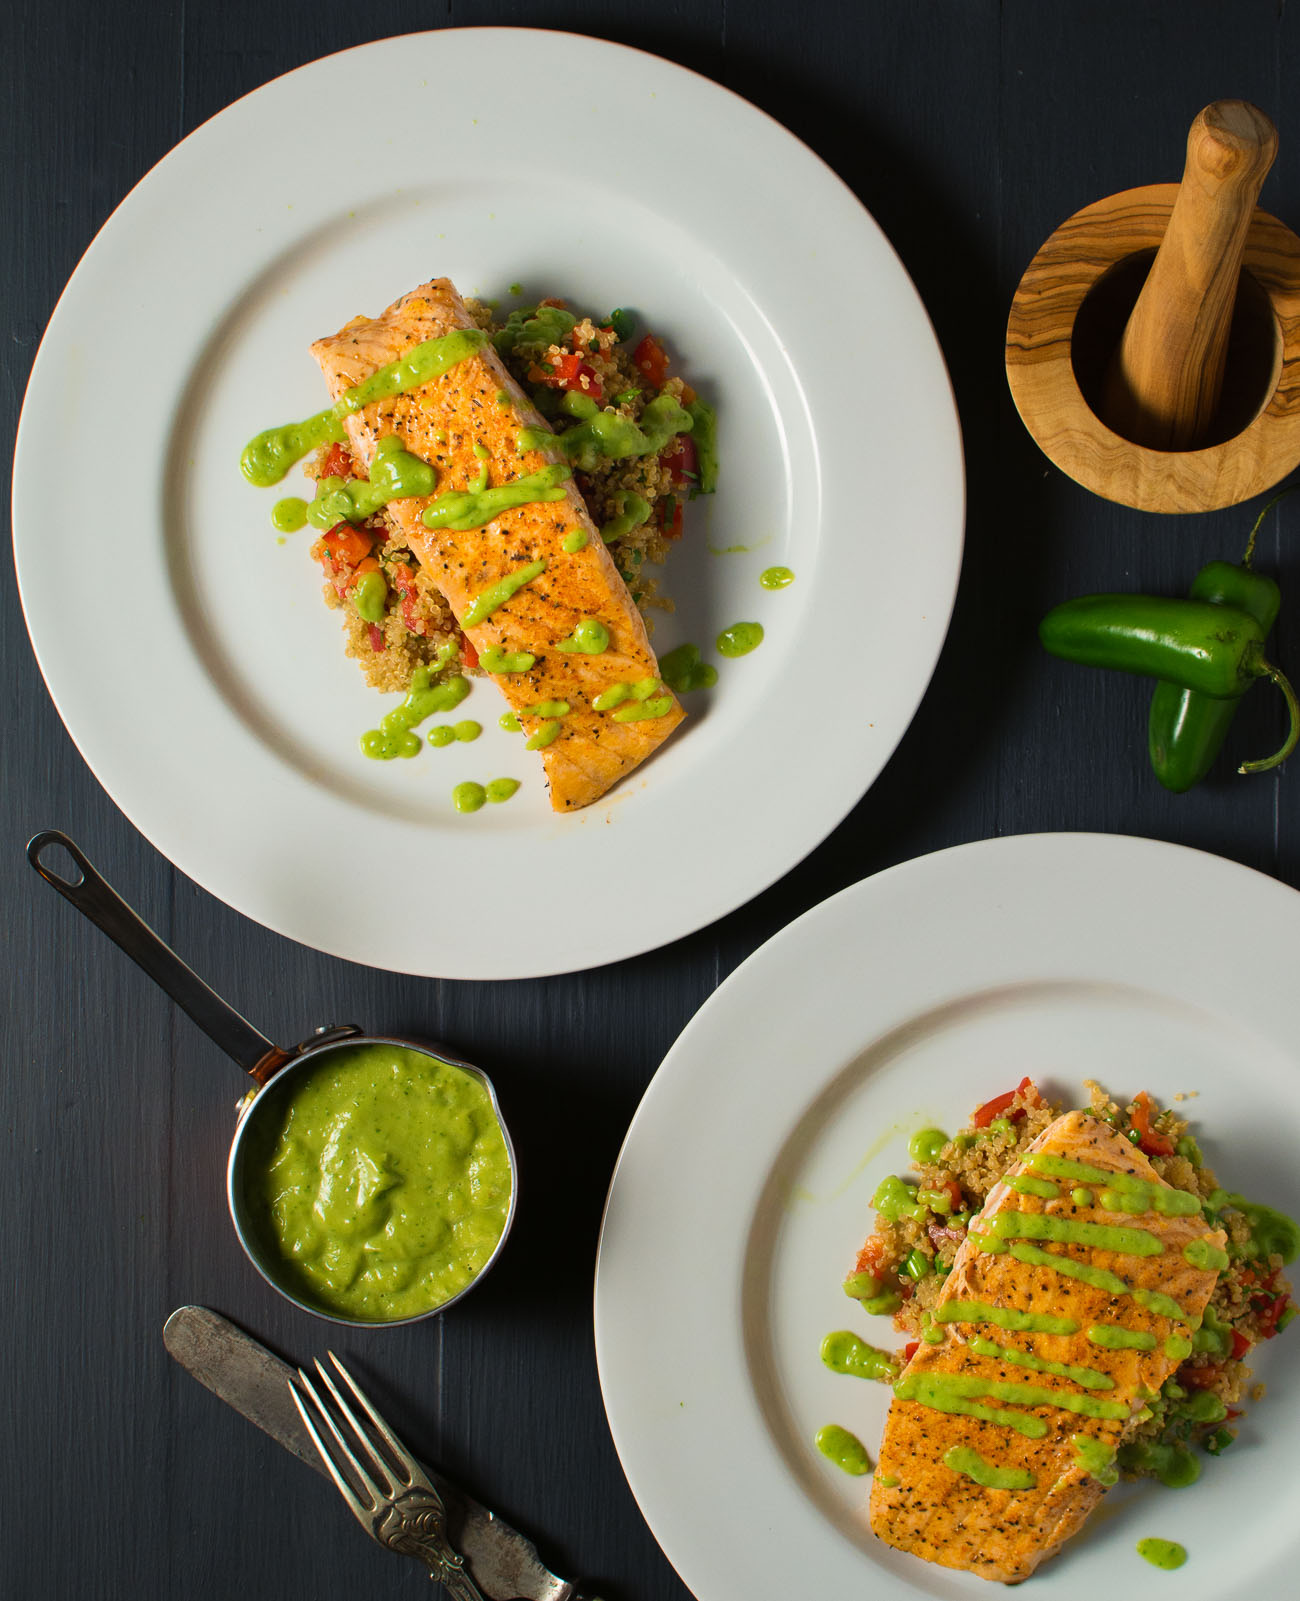 A superfood plate combines salmon, avocado and quinoa in a delicious weeknight meal.